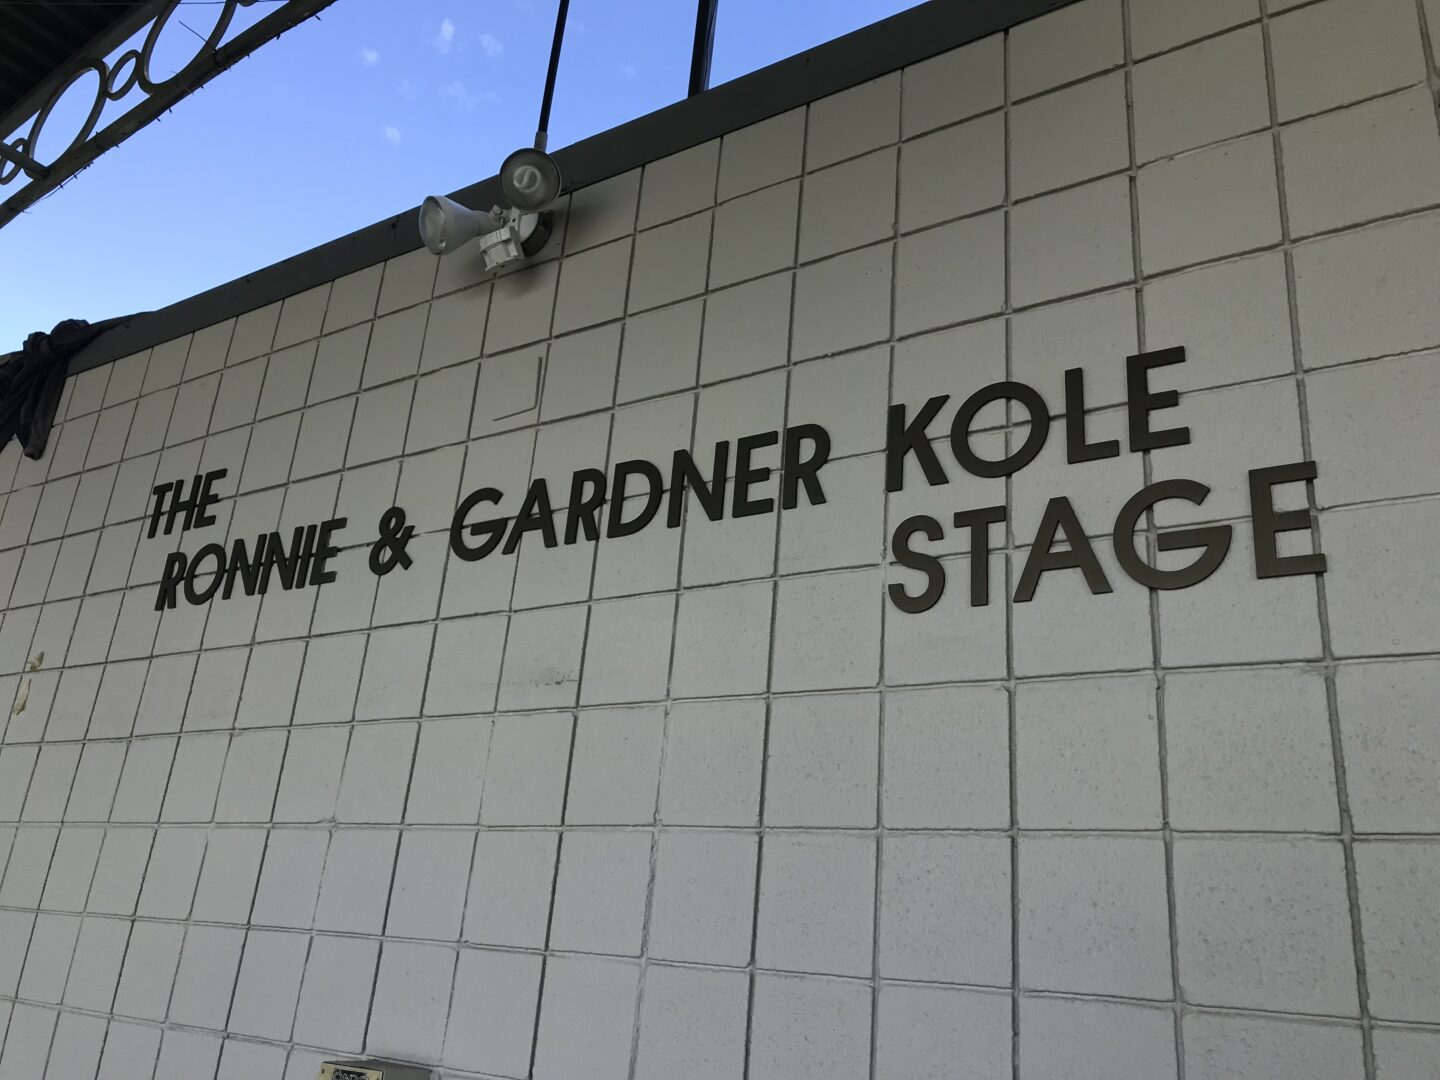 The Building Signage SEI HQ Ronnie & Gardner Kole Stage Architectural Sign